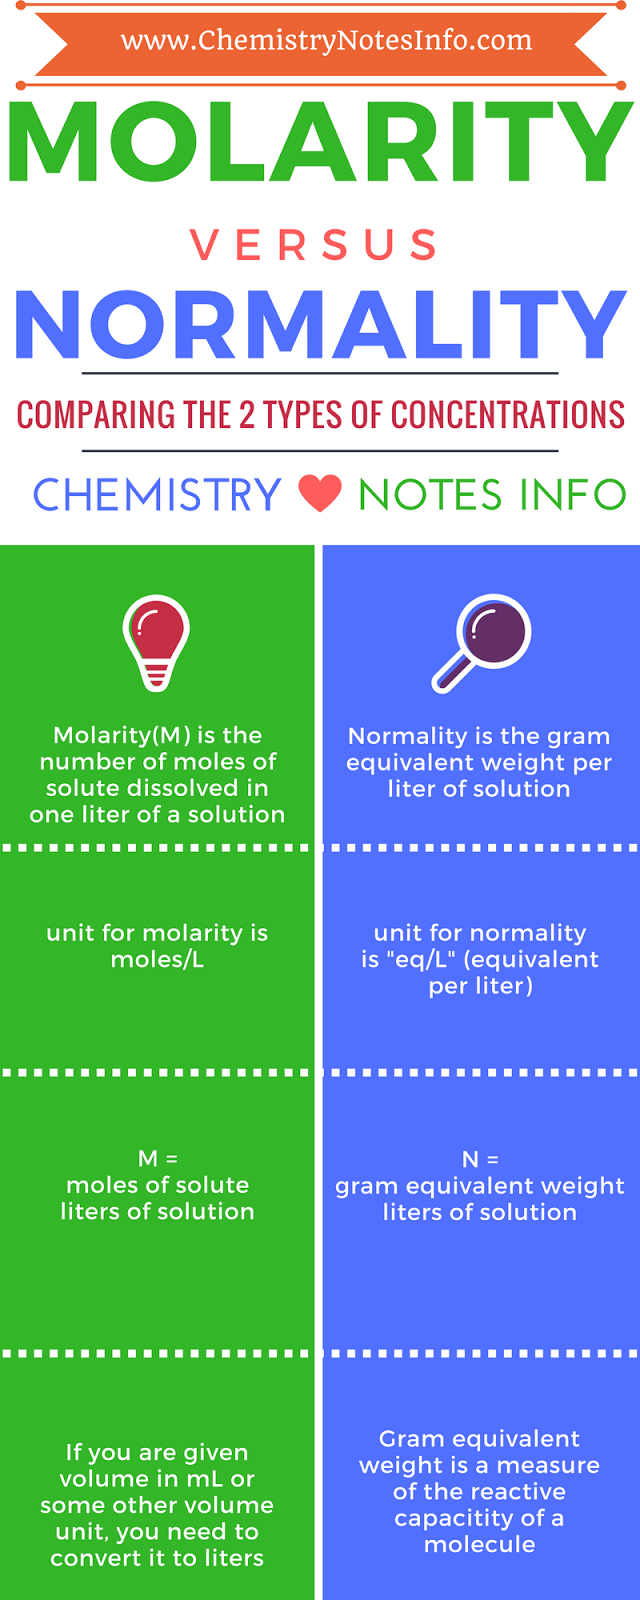 Molarity vs Normality